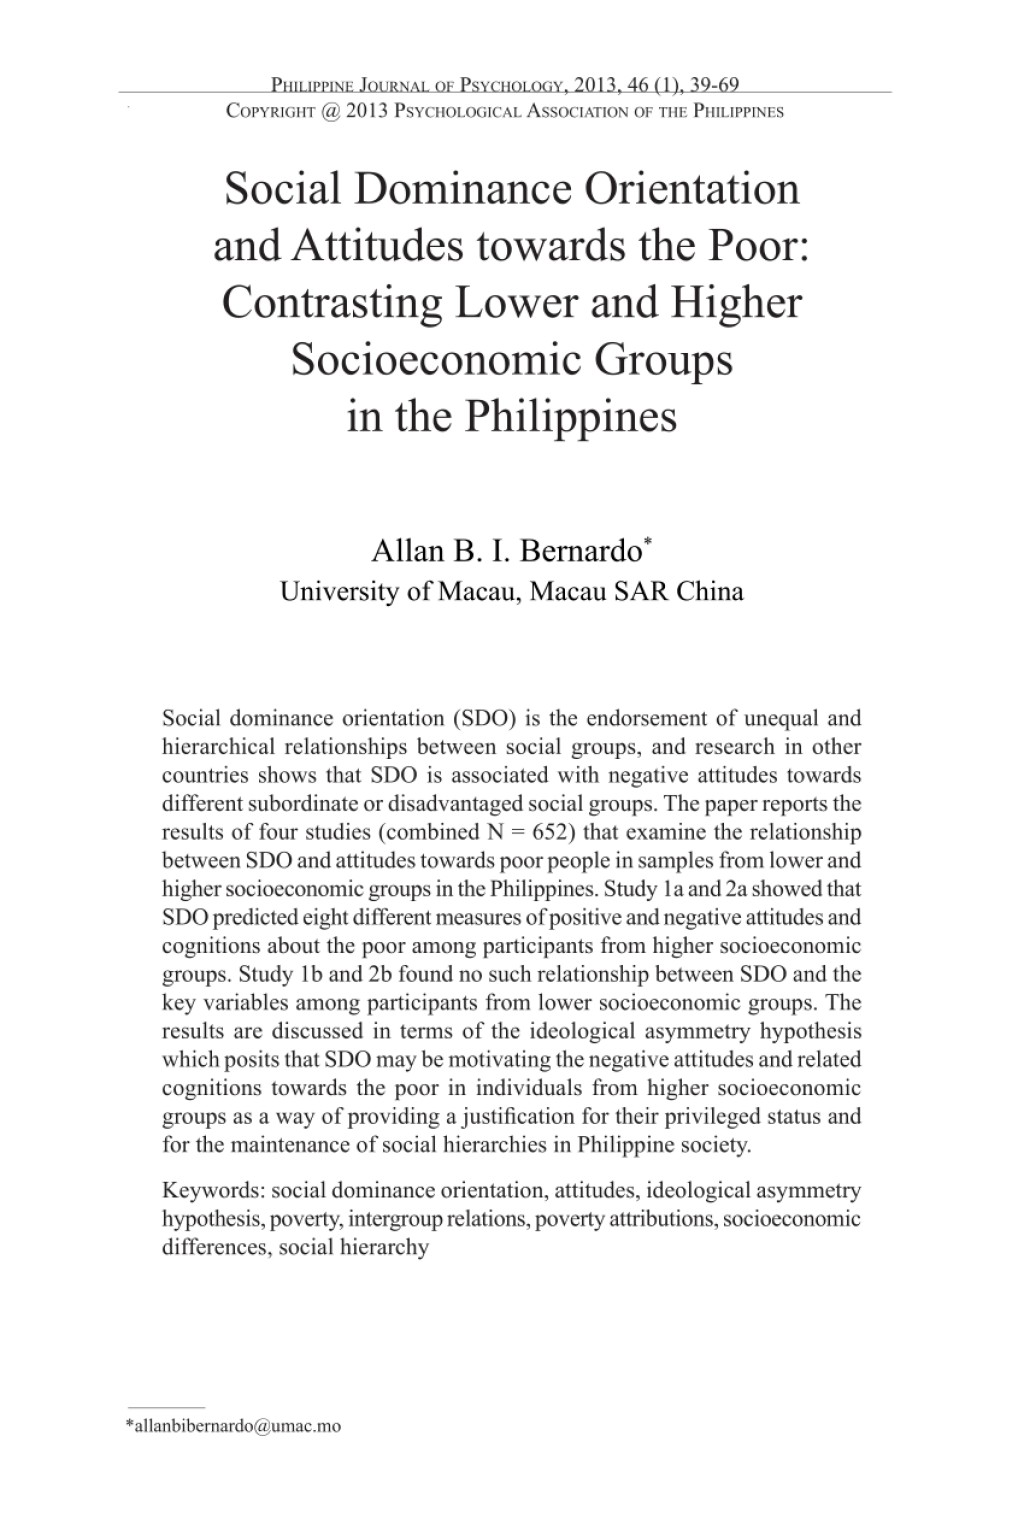 004 Poverty In The Philippines Research Paper Pdf Impressive Large